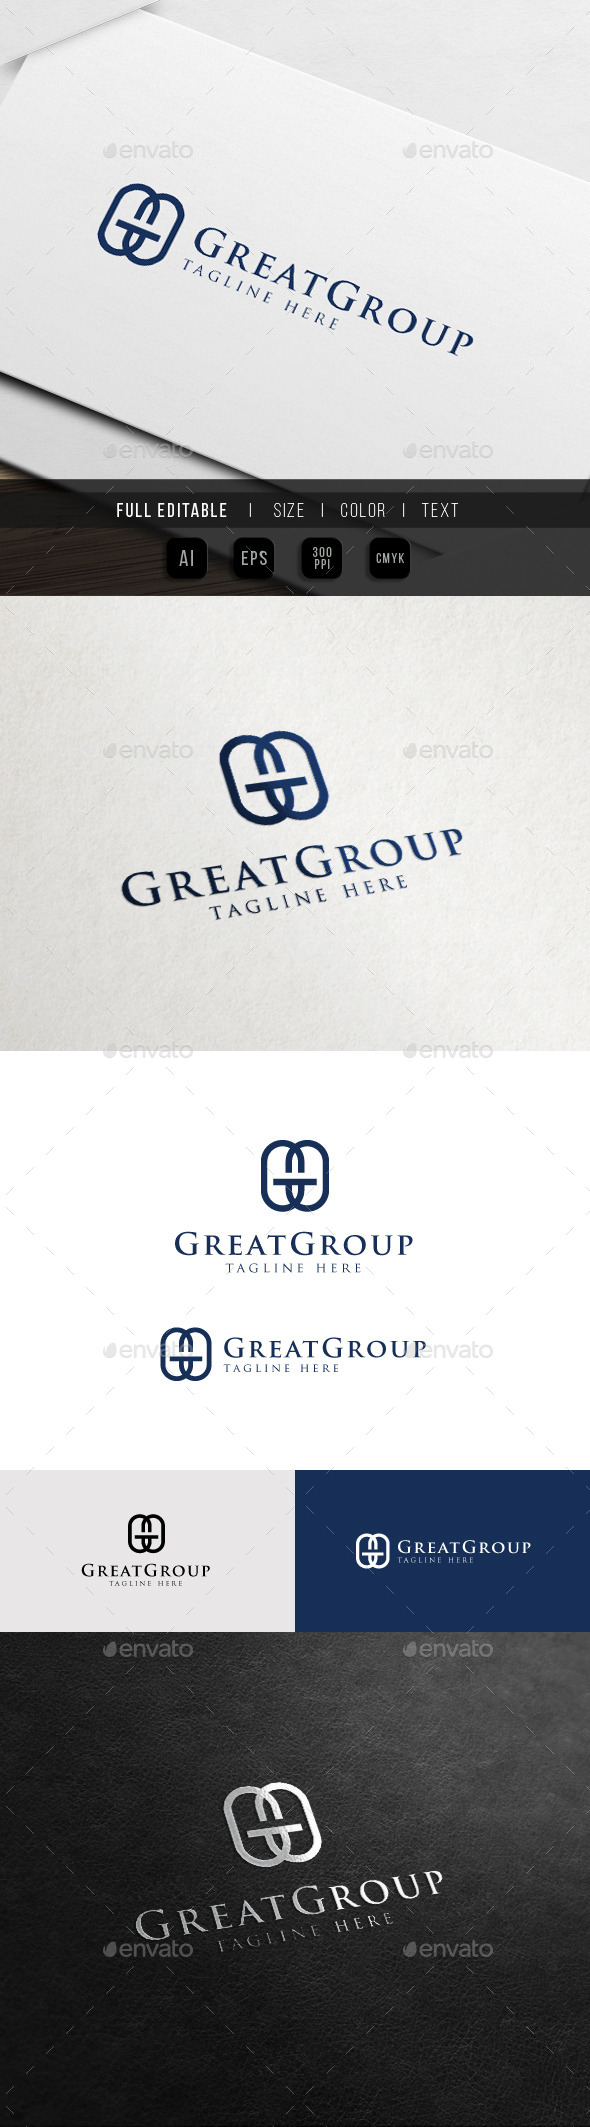 GraphicRiver Great Fashion Brand G GG Logo 11342106